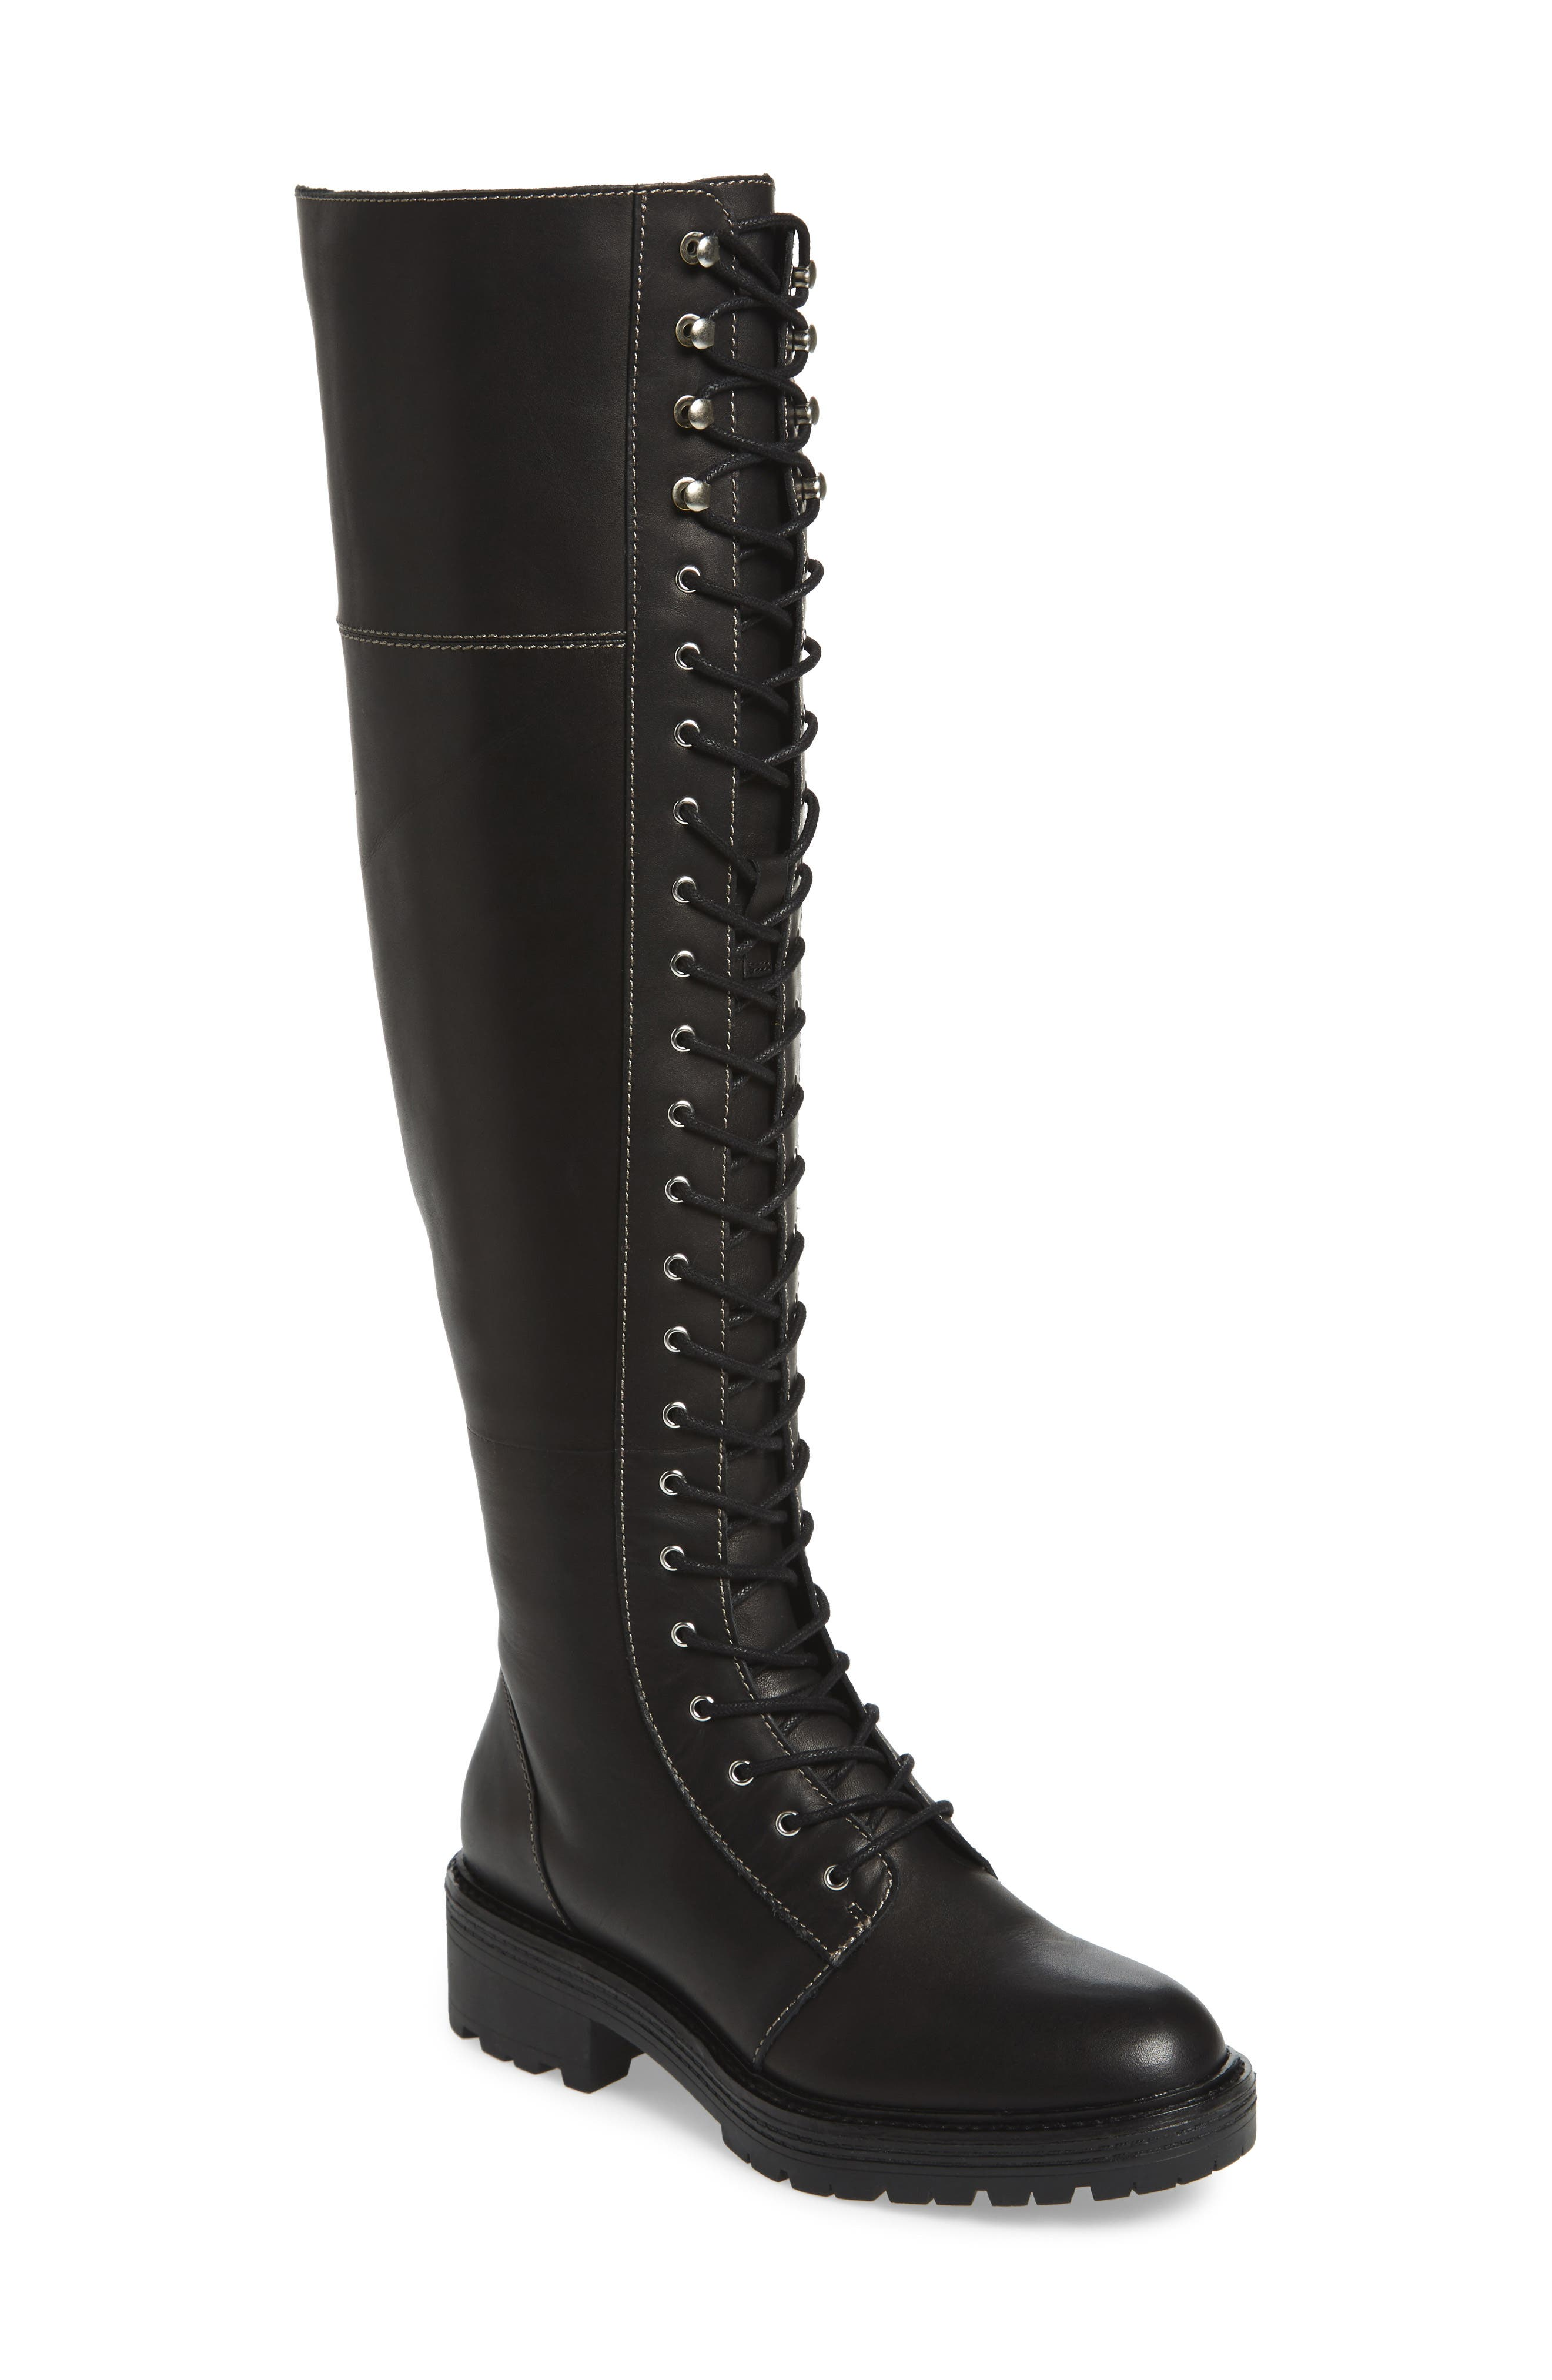 Malcom Over the Knee Boot,                             Main thumbnail 1, color,                             001